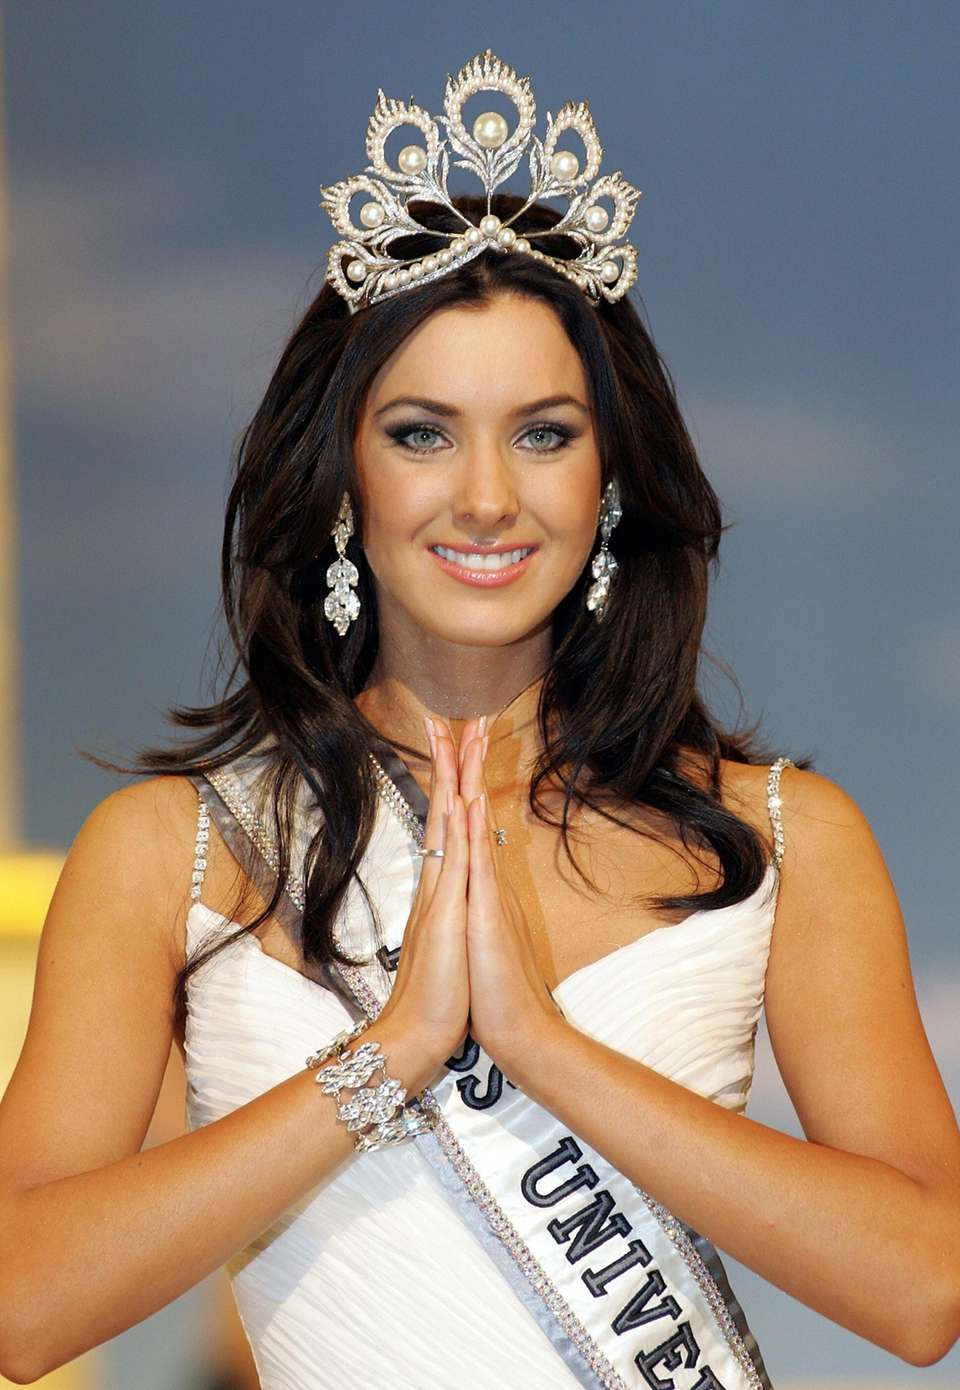 Miss Canada Natalie Glebova is all smiles after